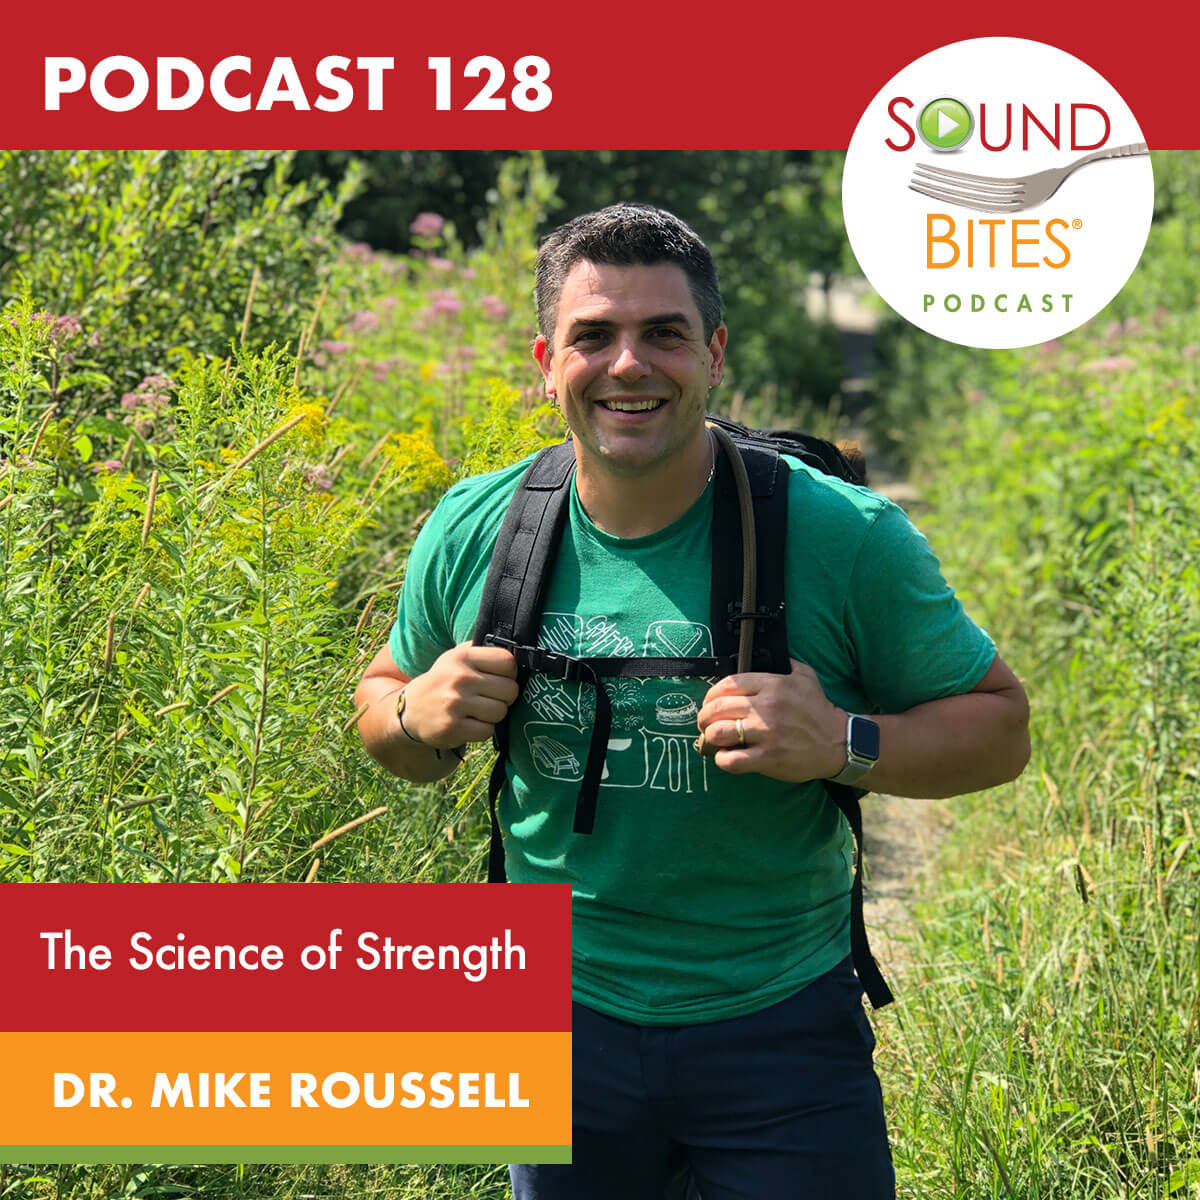 Sound Bites Podcast: Episode 128 The Science of Strength – Dr. Mike Roussell